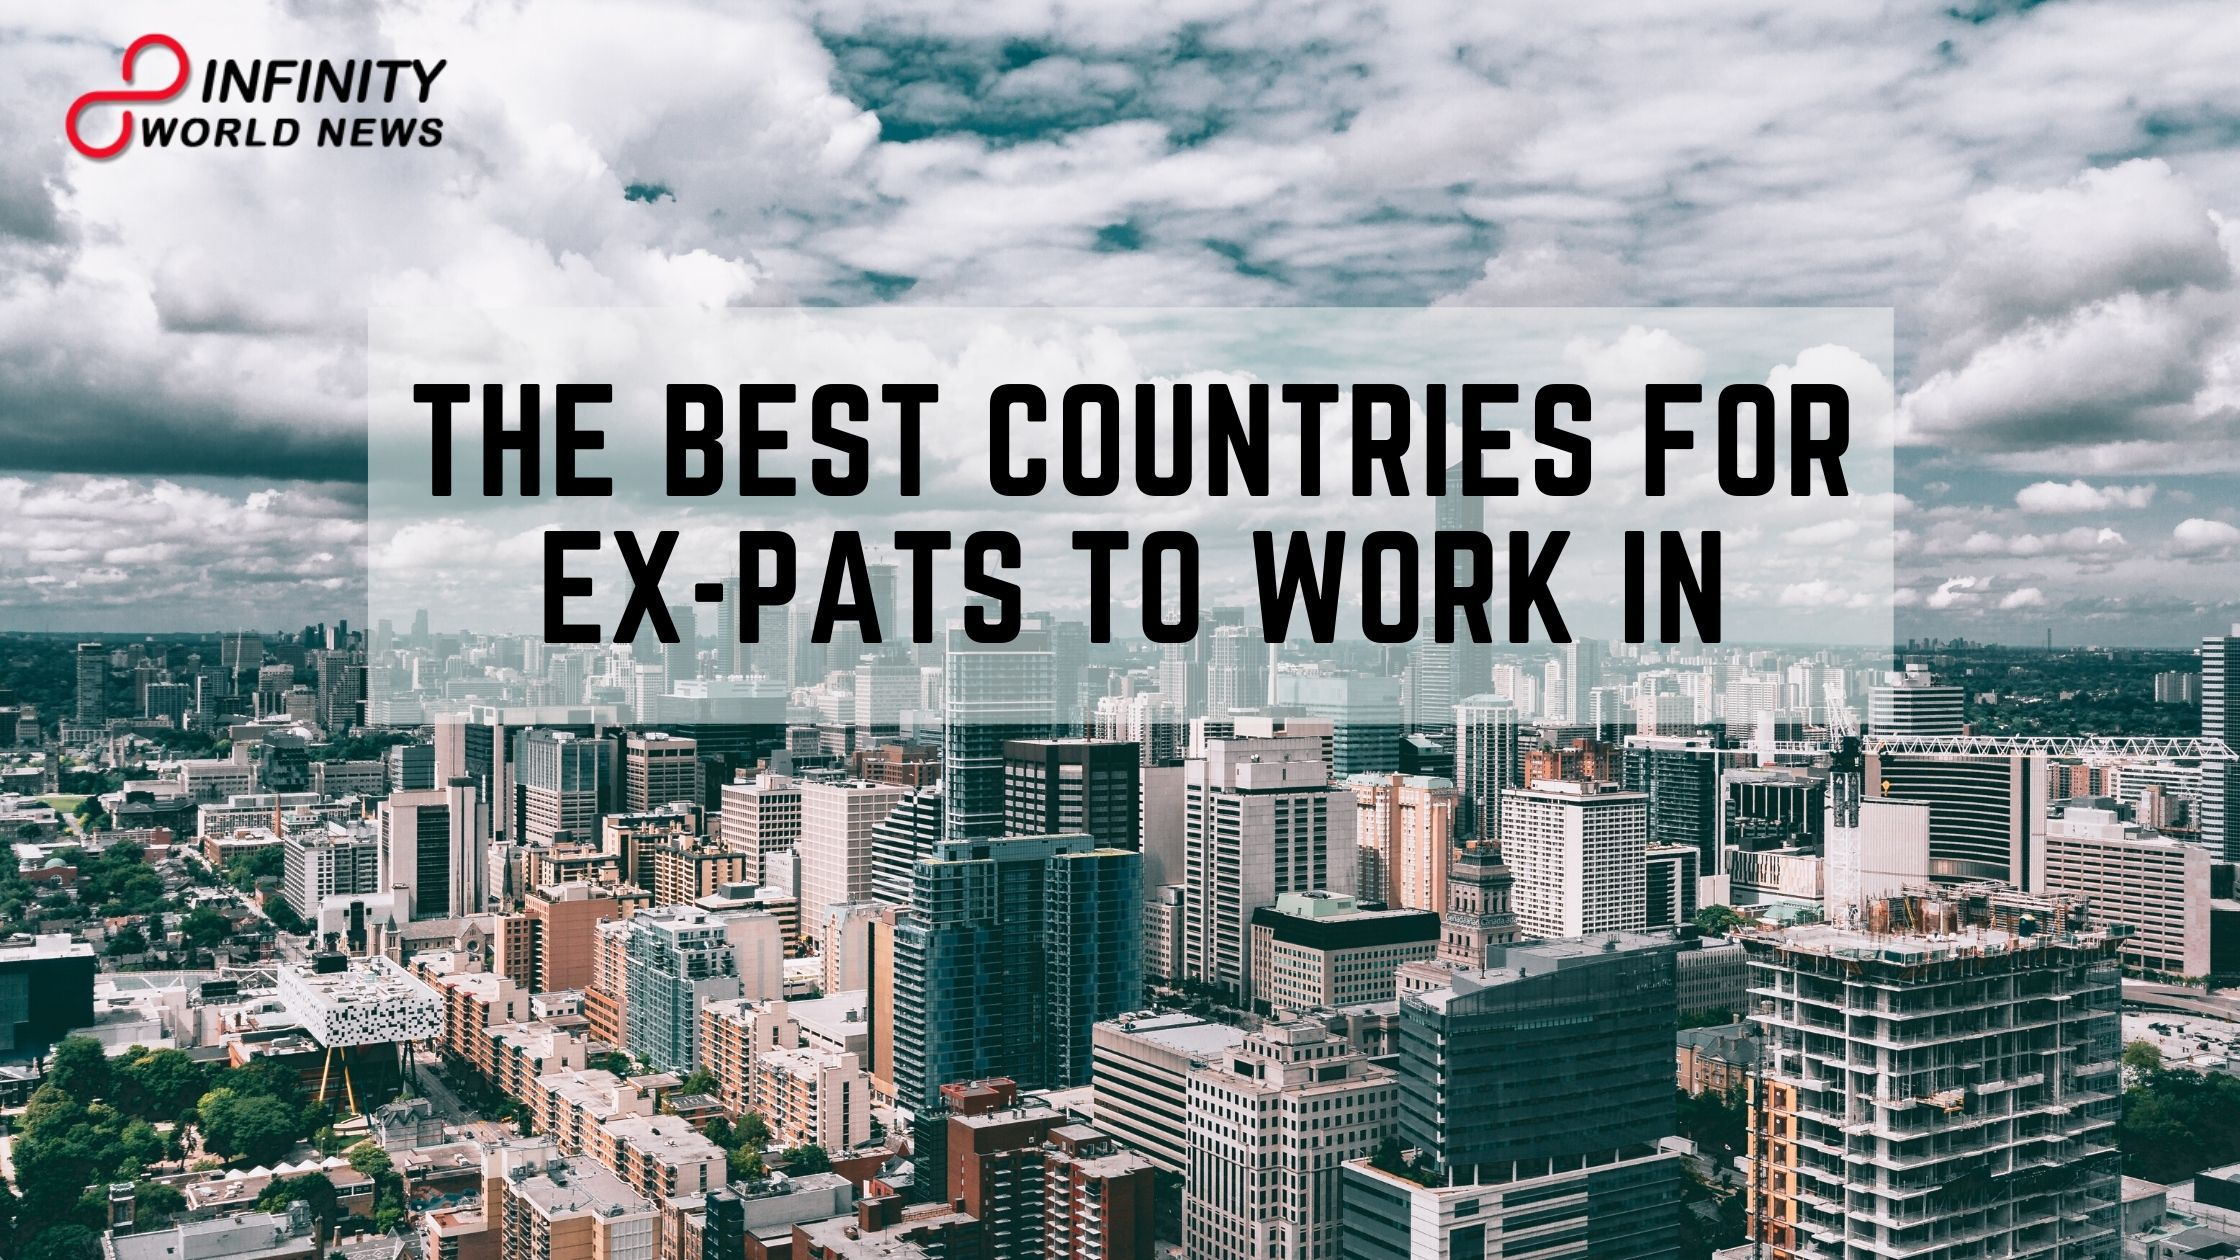 THE BEST COUNTRIES FOR EX-PATS TO WORK IN